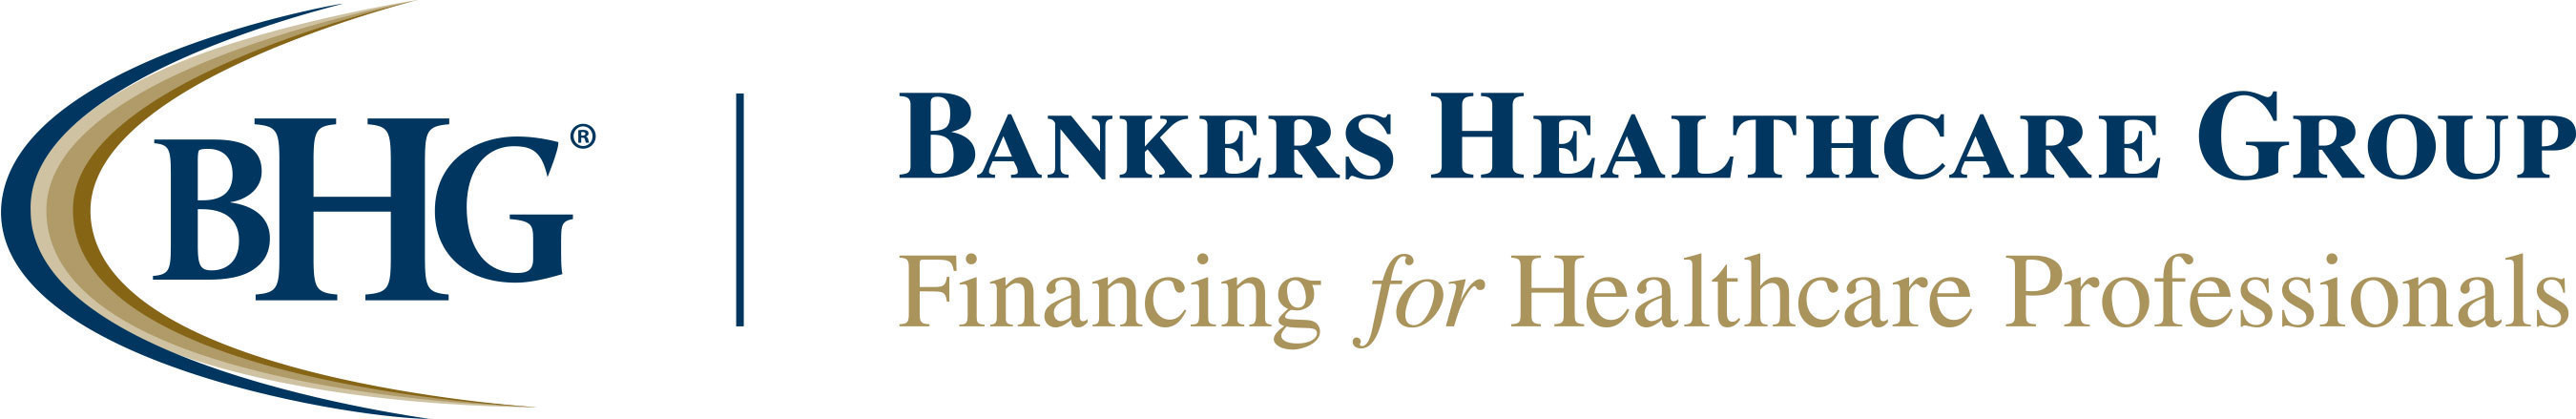 Bankers Healthcare Group, the leading provider of financing solutions for healthcare professionals since 2001.